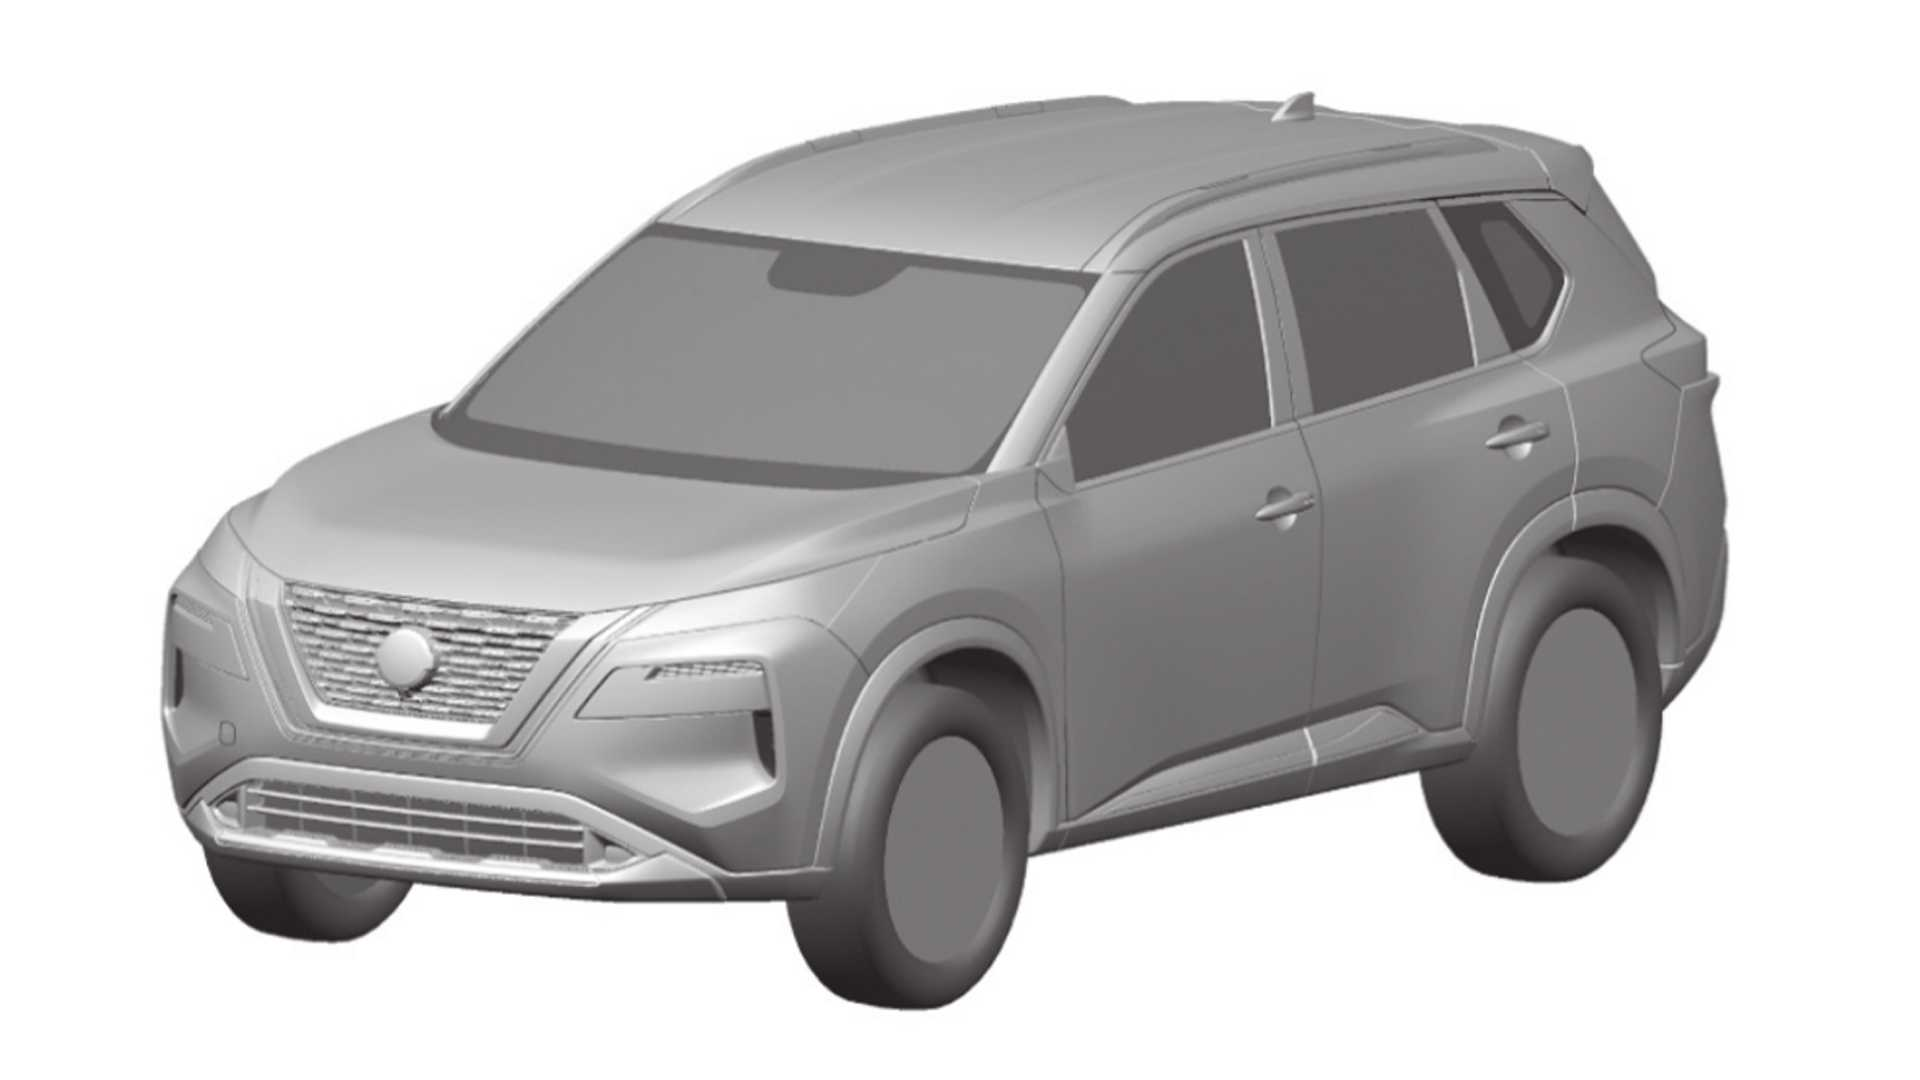 These pictures, officially submitted by Nissan to the Brazil Patent Office, reveal the exterior design of the fourth-generation Nissan X-Trail SUV that was scheduled for premiere before mid-summer.